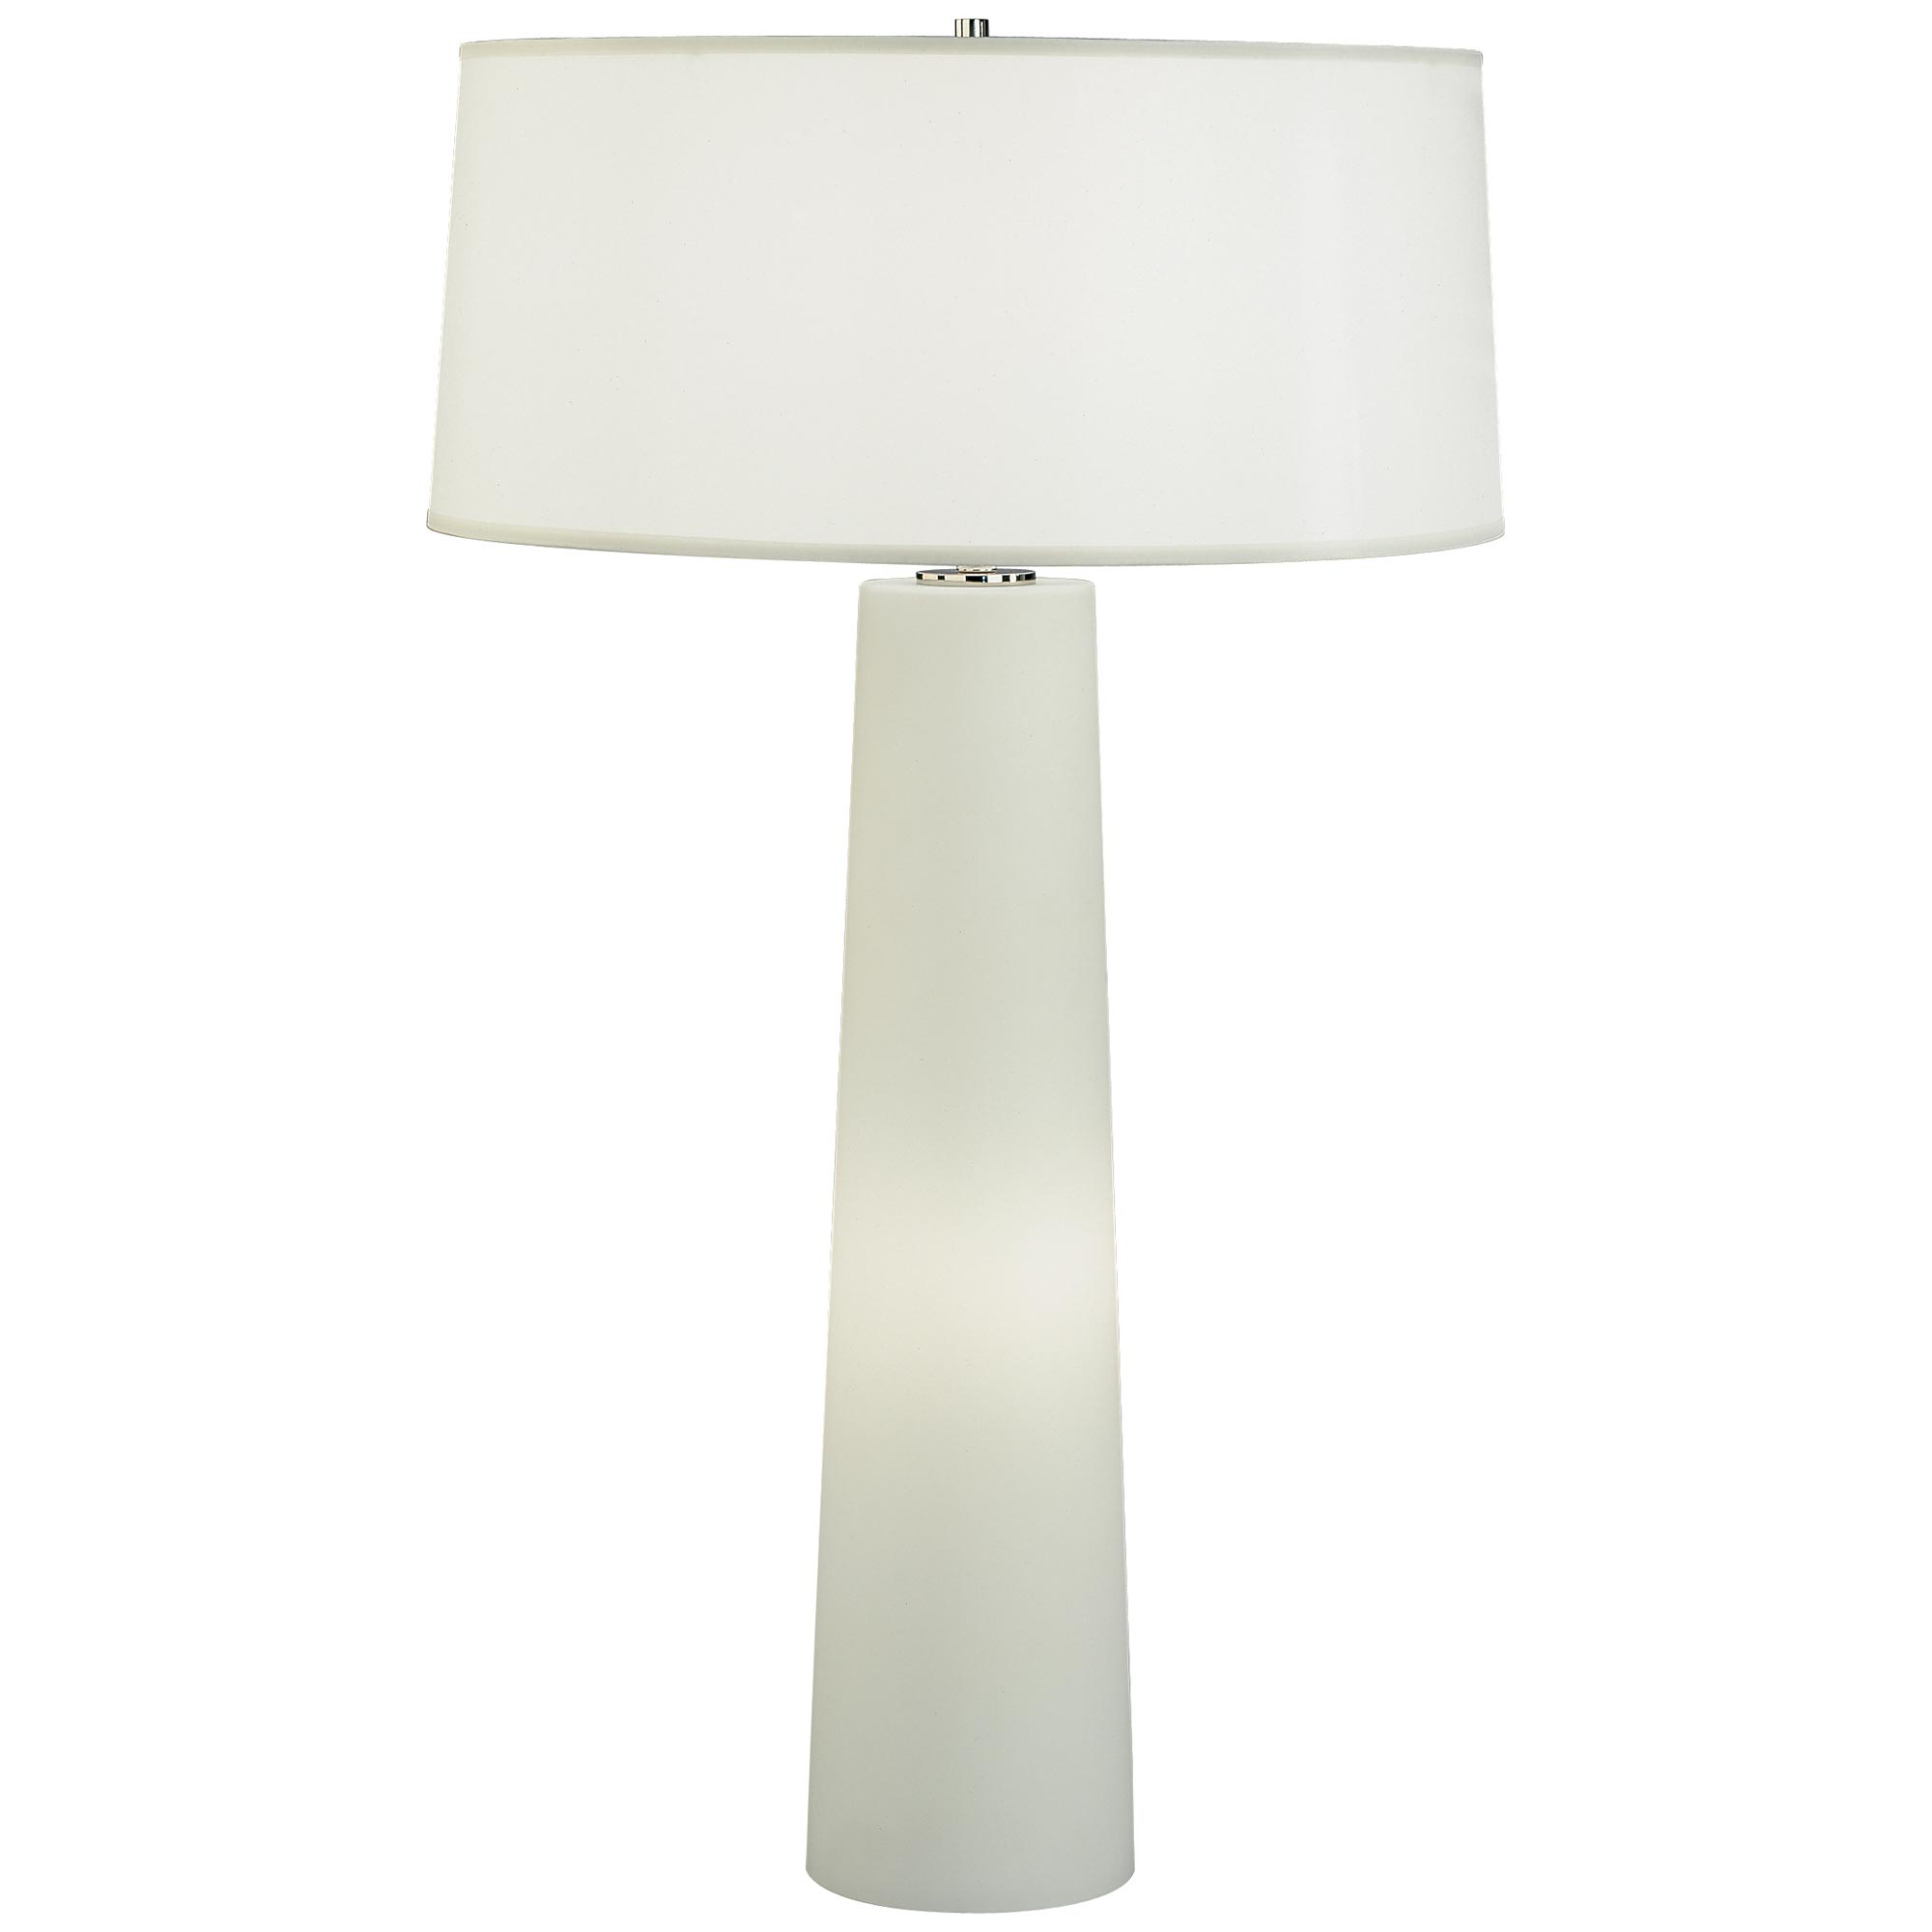 Olinda table lamp wnightlight by robert abbey ra 1578w aloadofball Choice Image